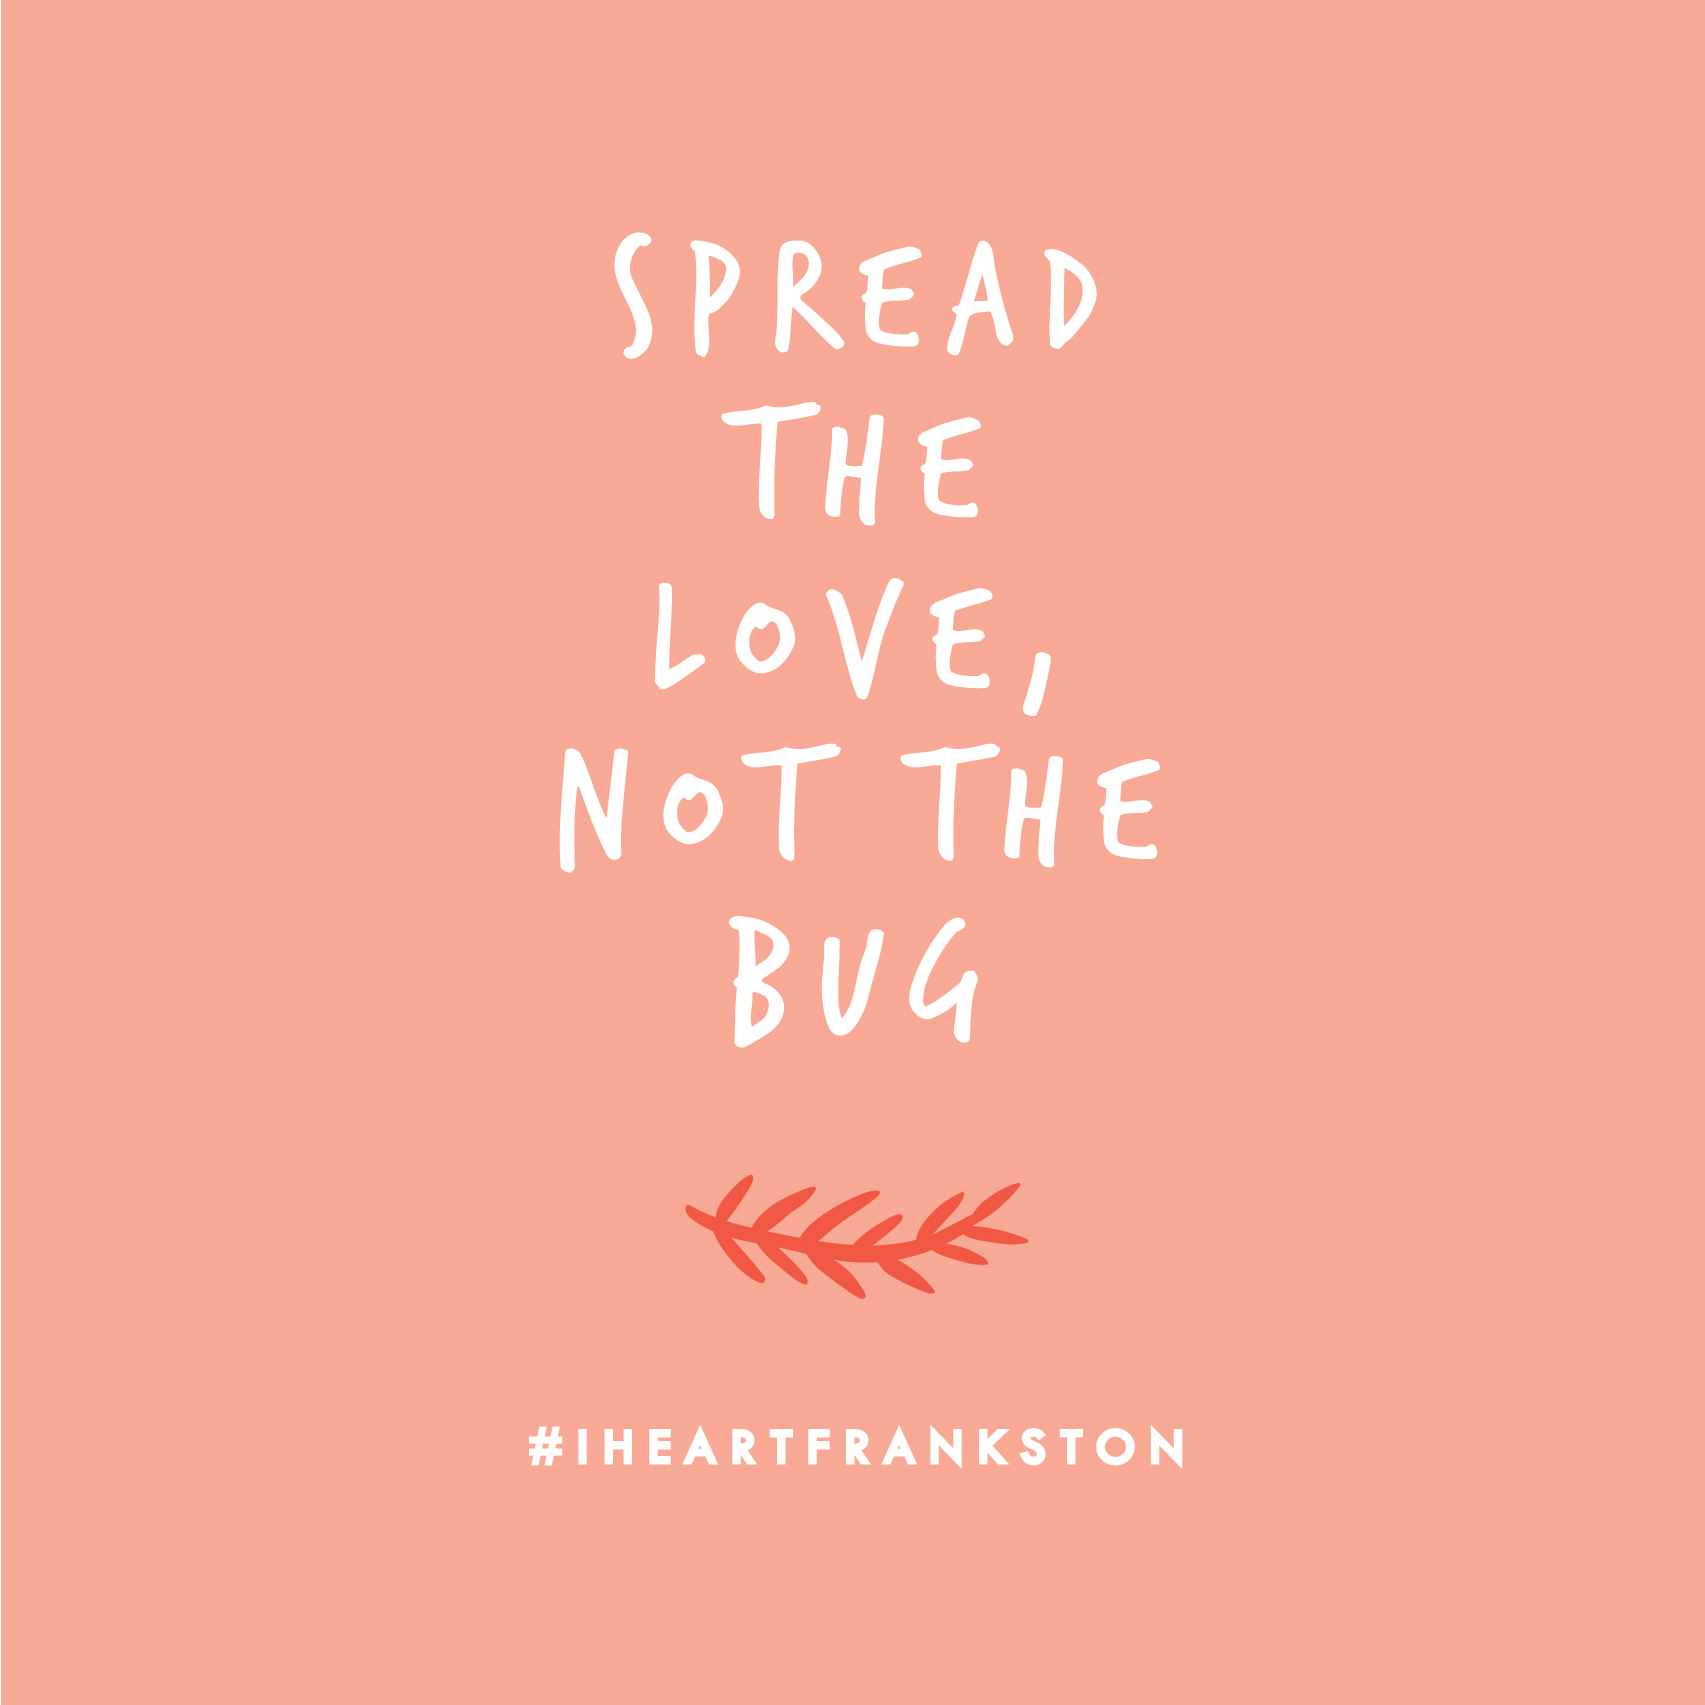 Spread The Love Not The Bug